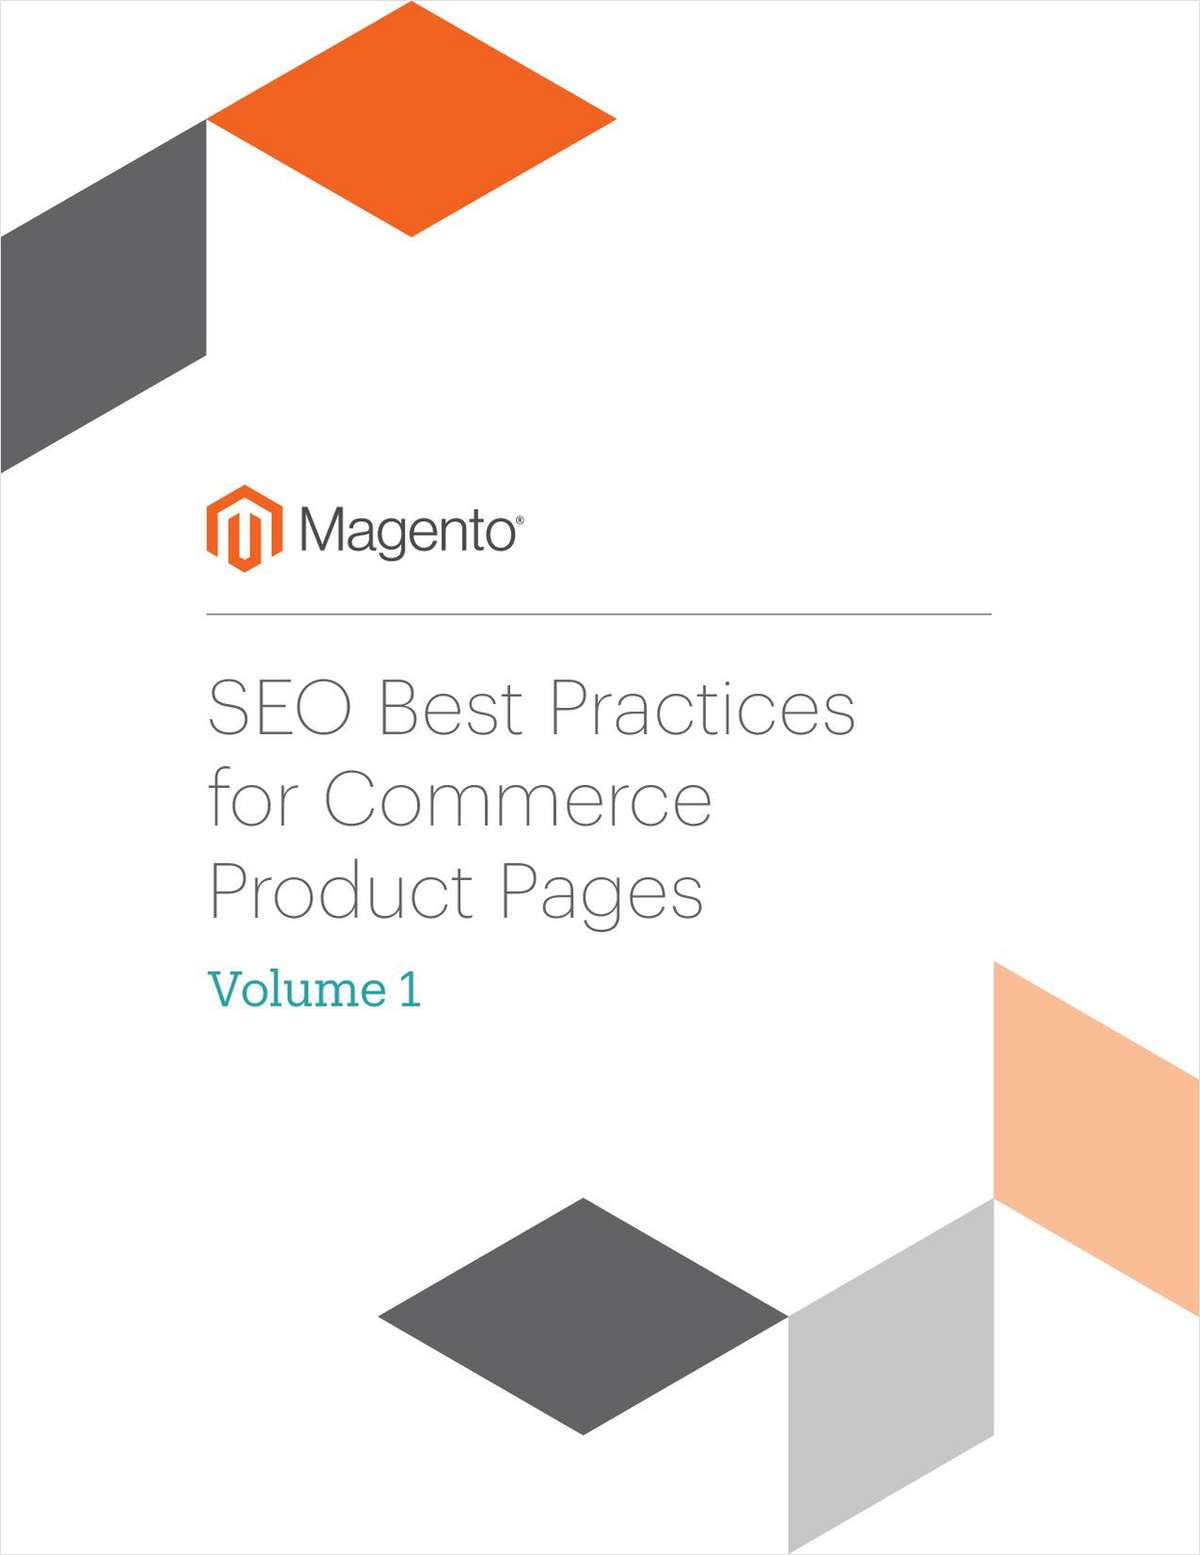 SEO Best Practices for Commerce Product Pages: Volume 1